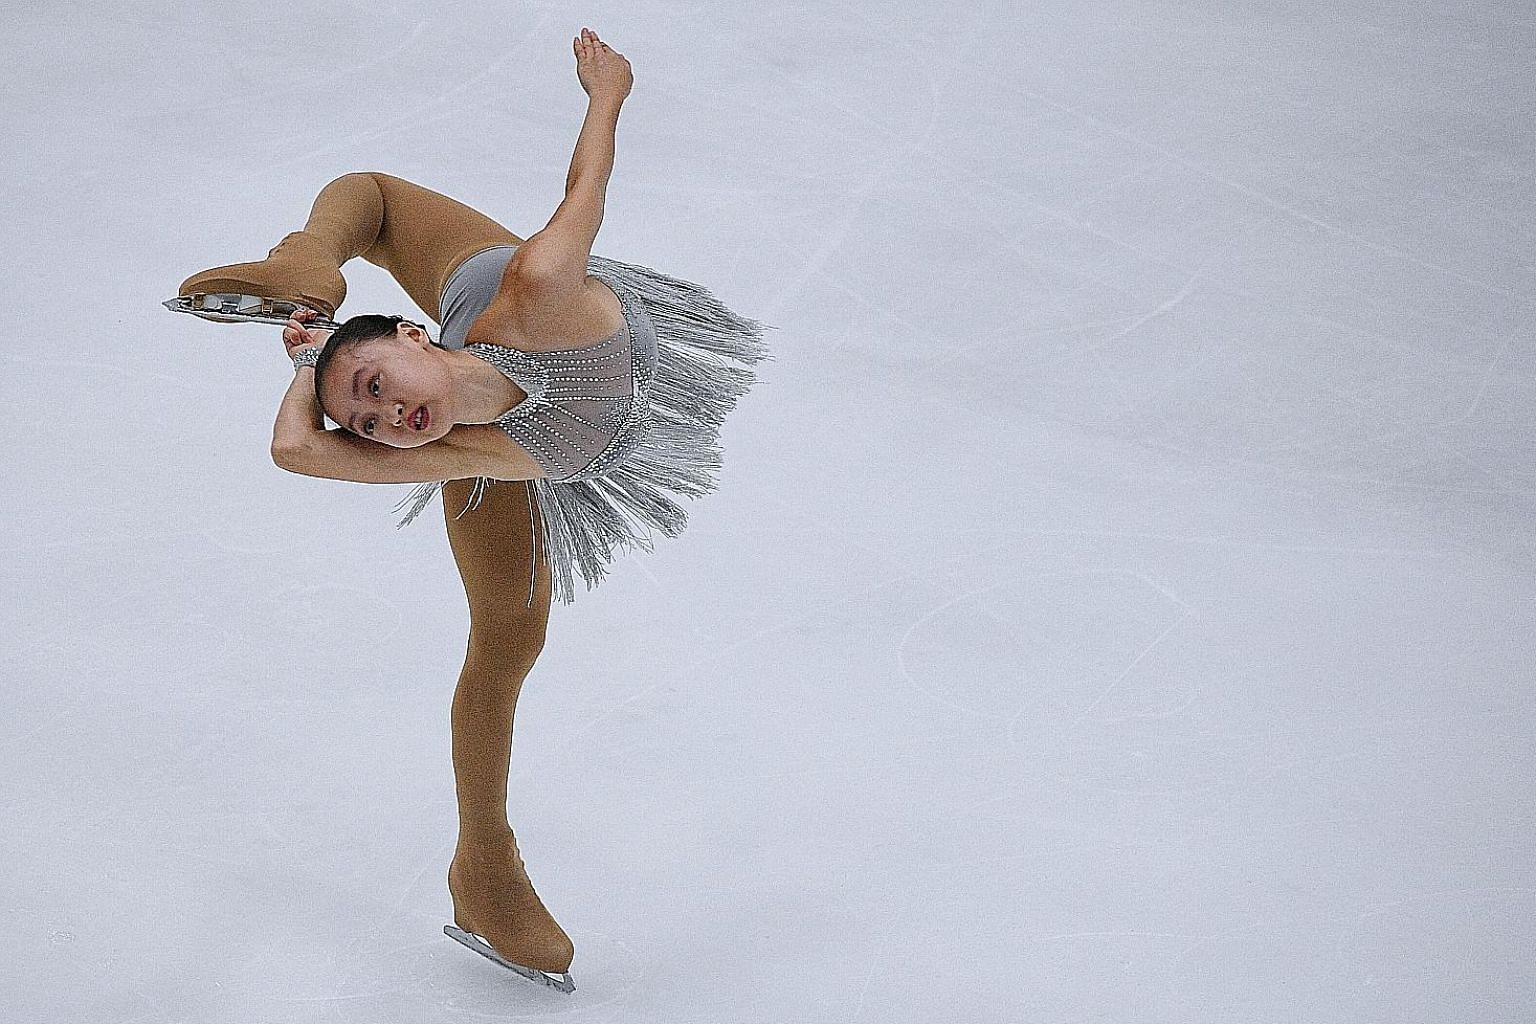 Yu Shuran on her way to the figure skating gold at the 2017 SEA Games. She says that if athlete abuse is an issue in Singapore, then she hopes those affected can talk about it and seek help from the Safe Sport Taskforce.